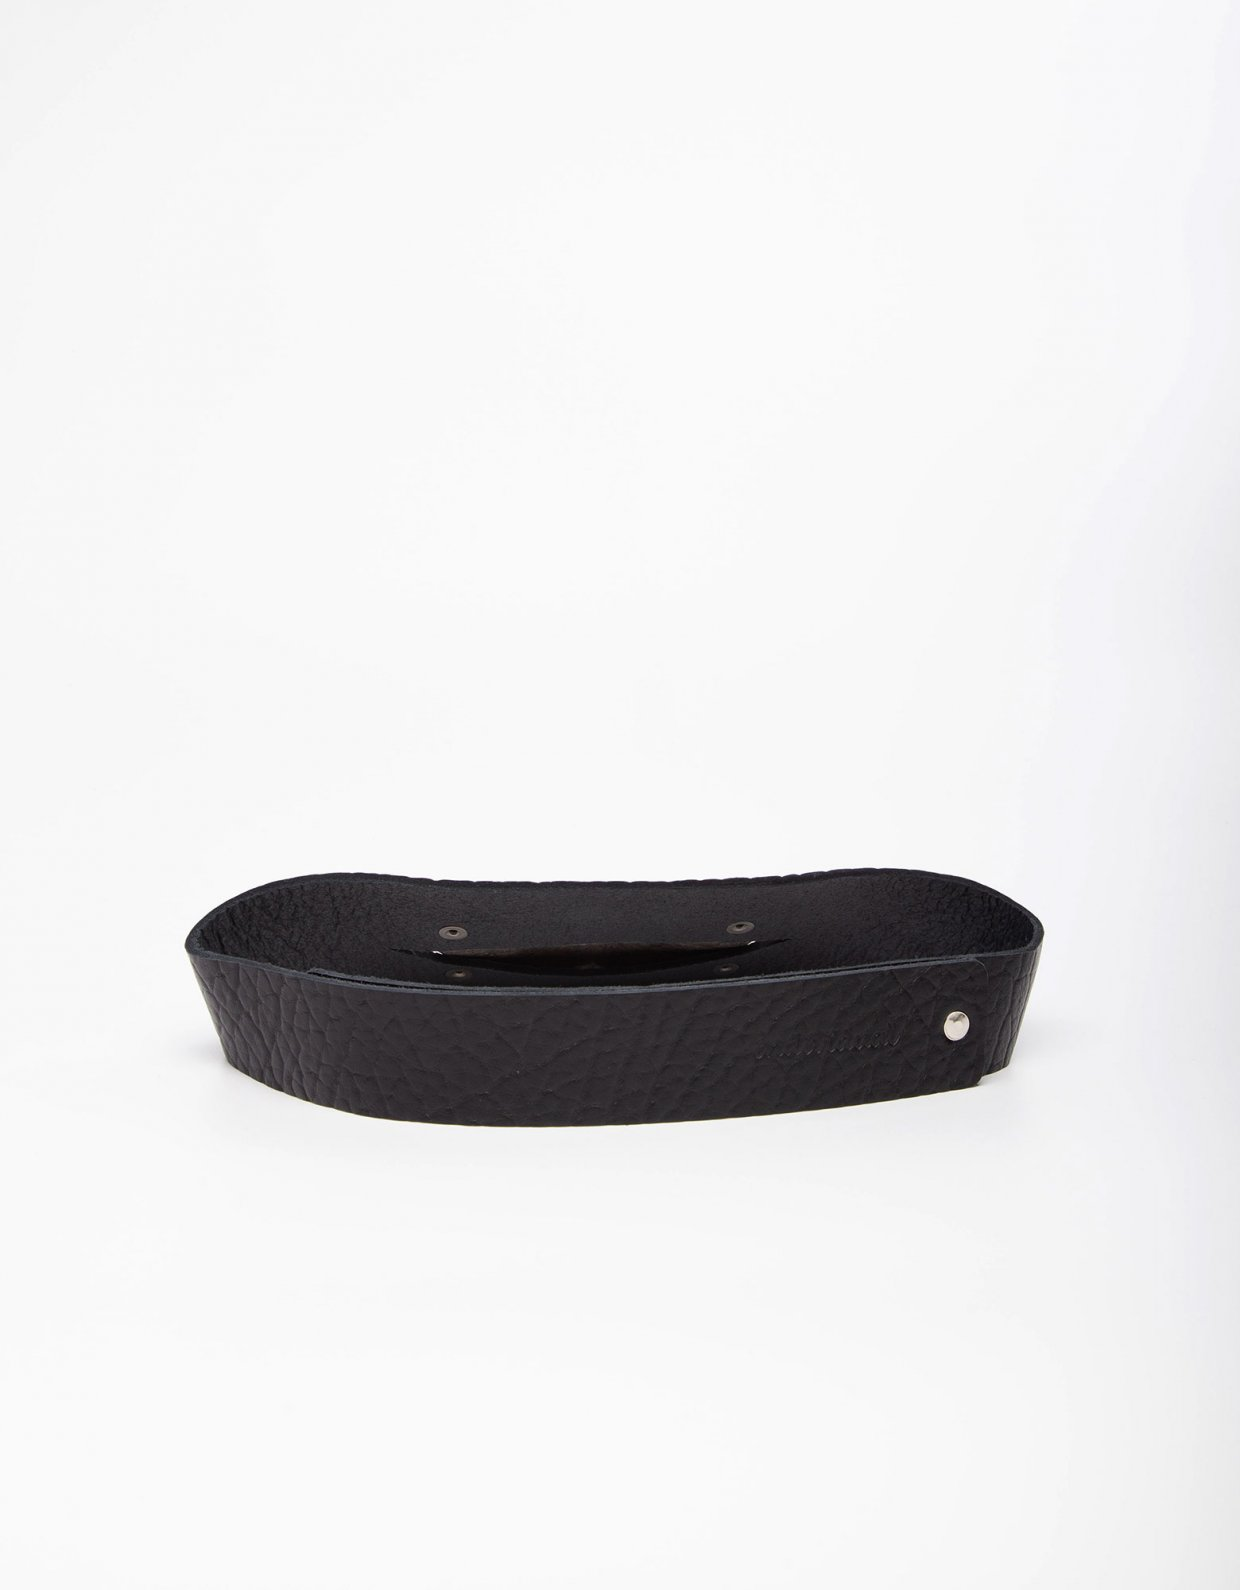 Individual Art Leather My love  black belt